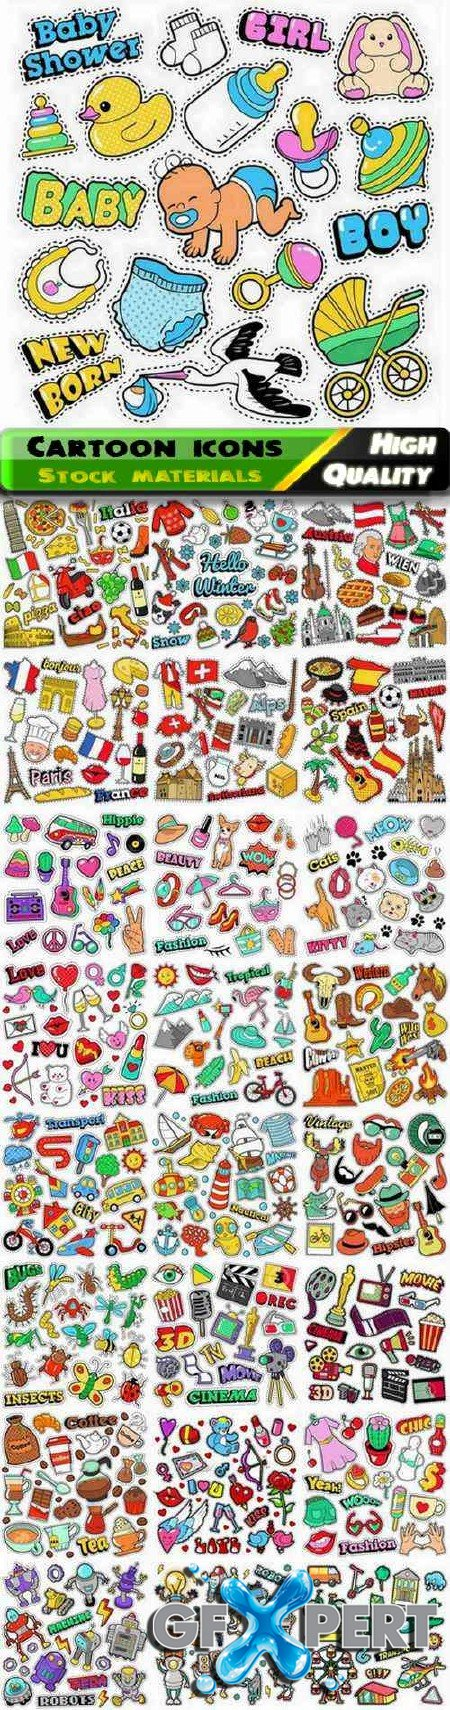 Set of different cartoon icons and objects illustration 25 Eps